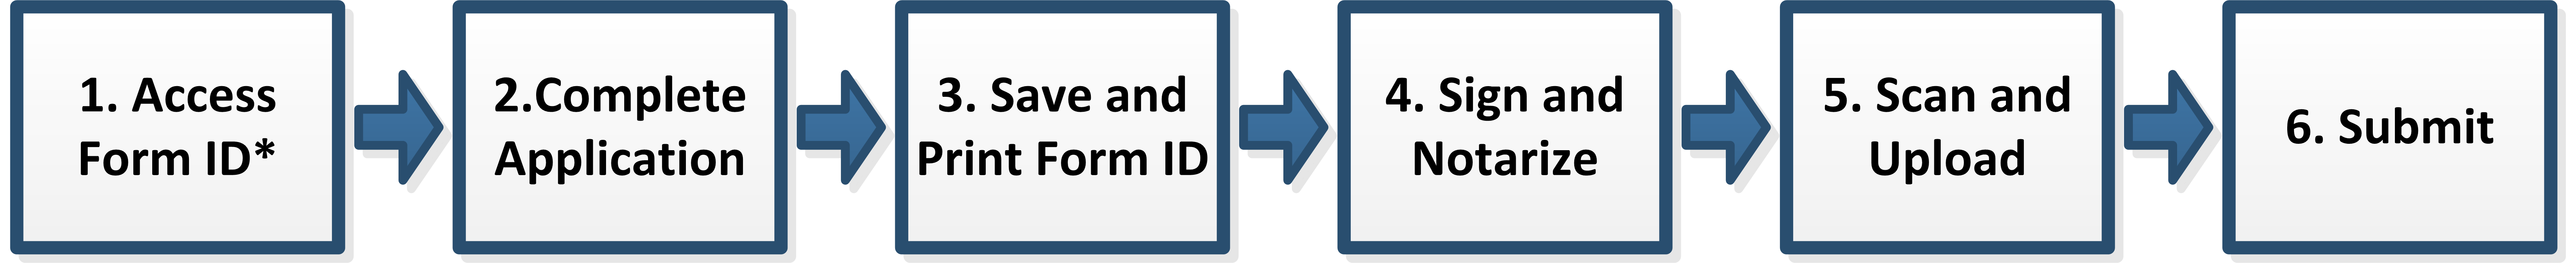 Illustration of submitting an electronic Form ID application